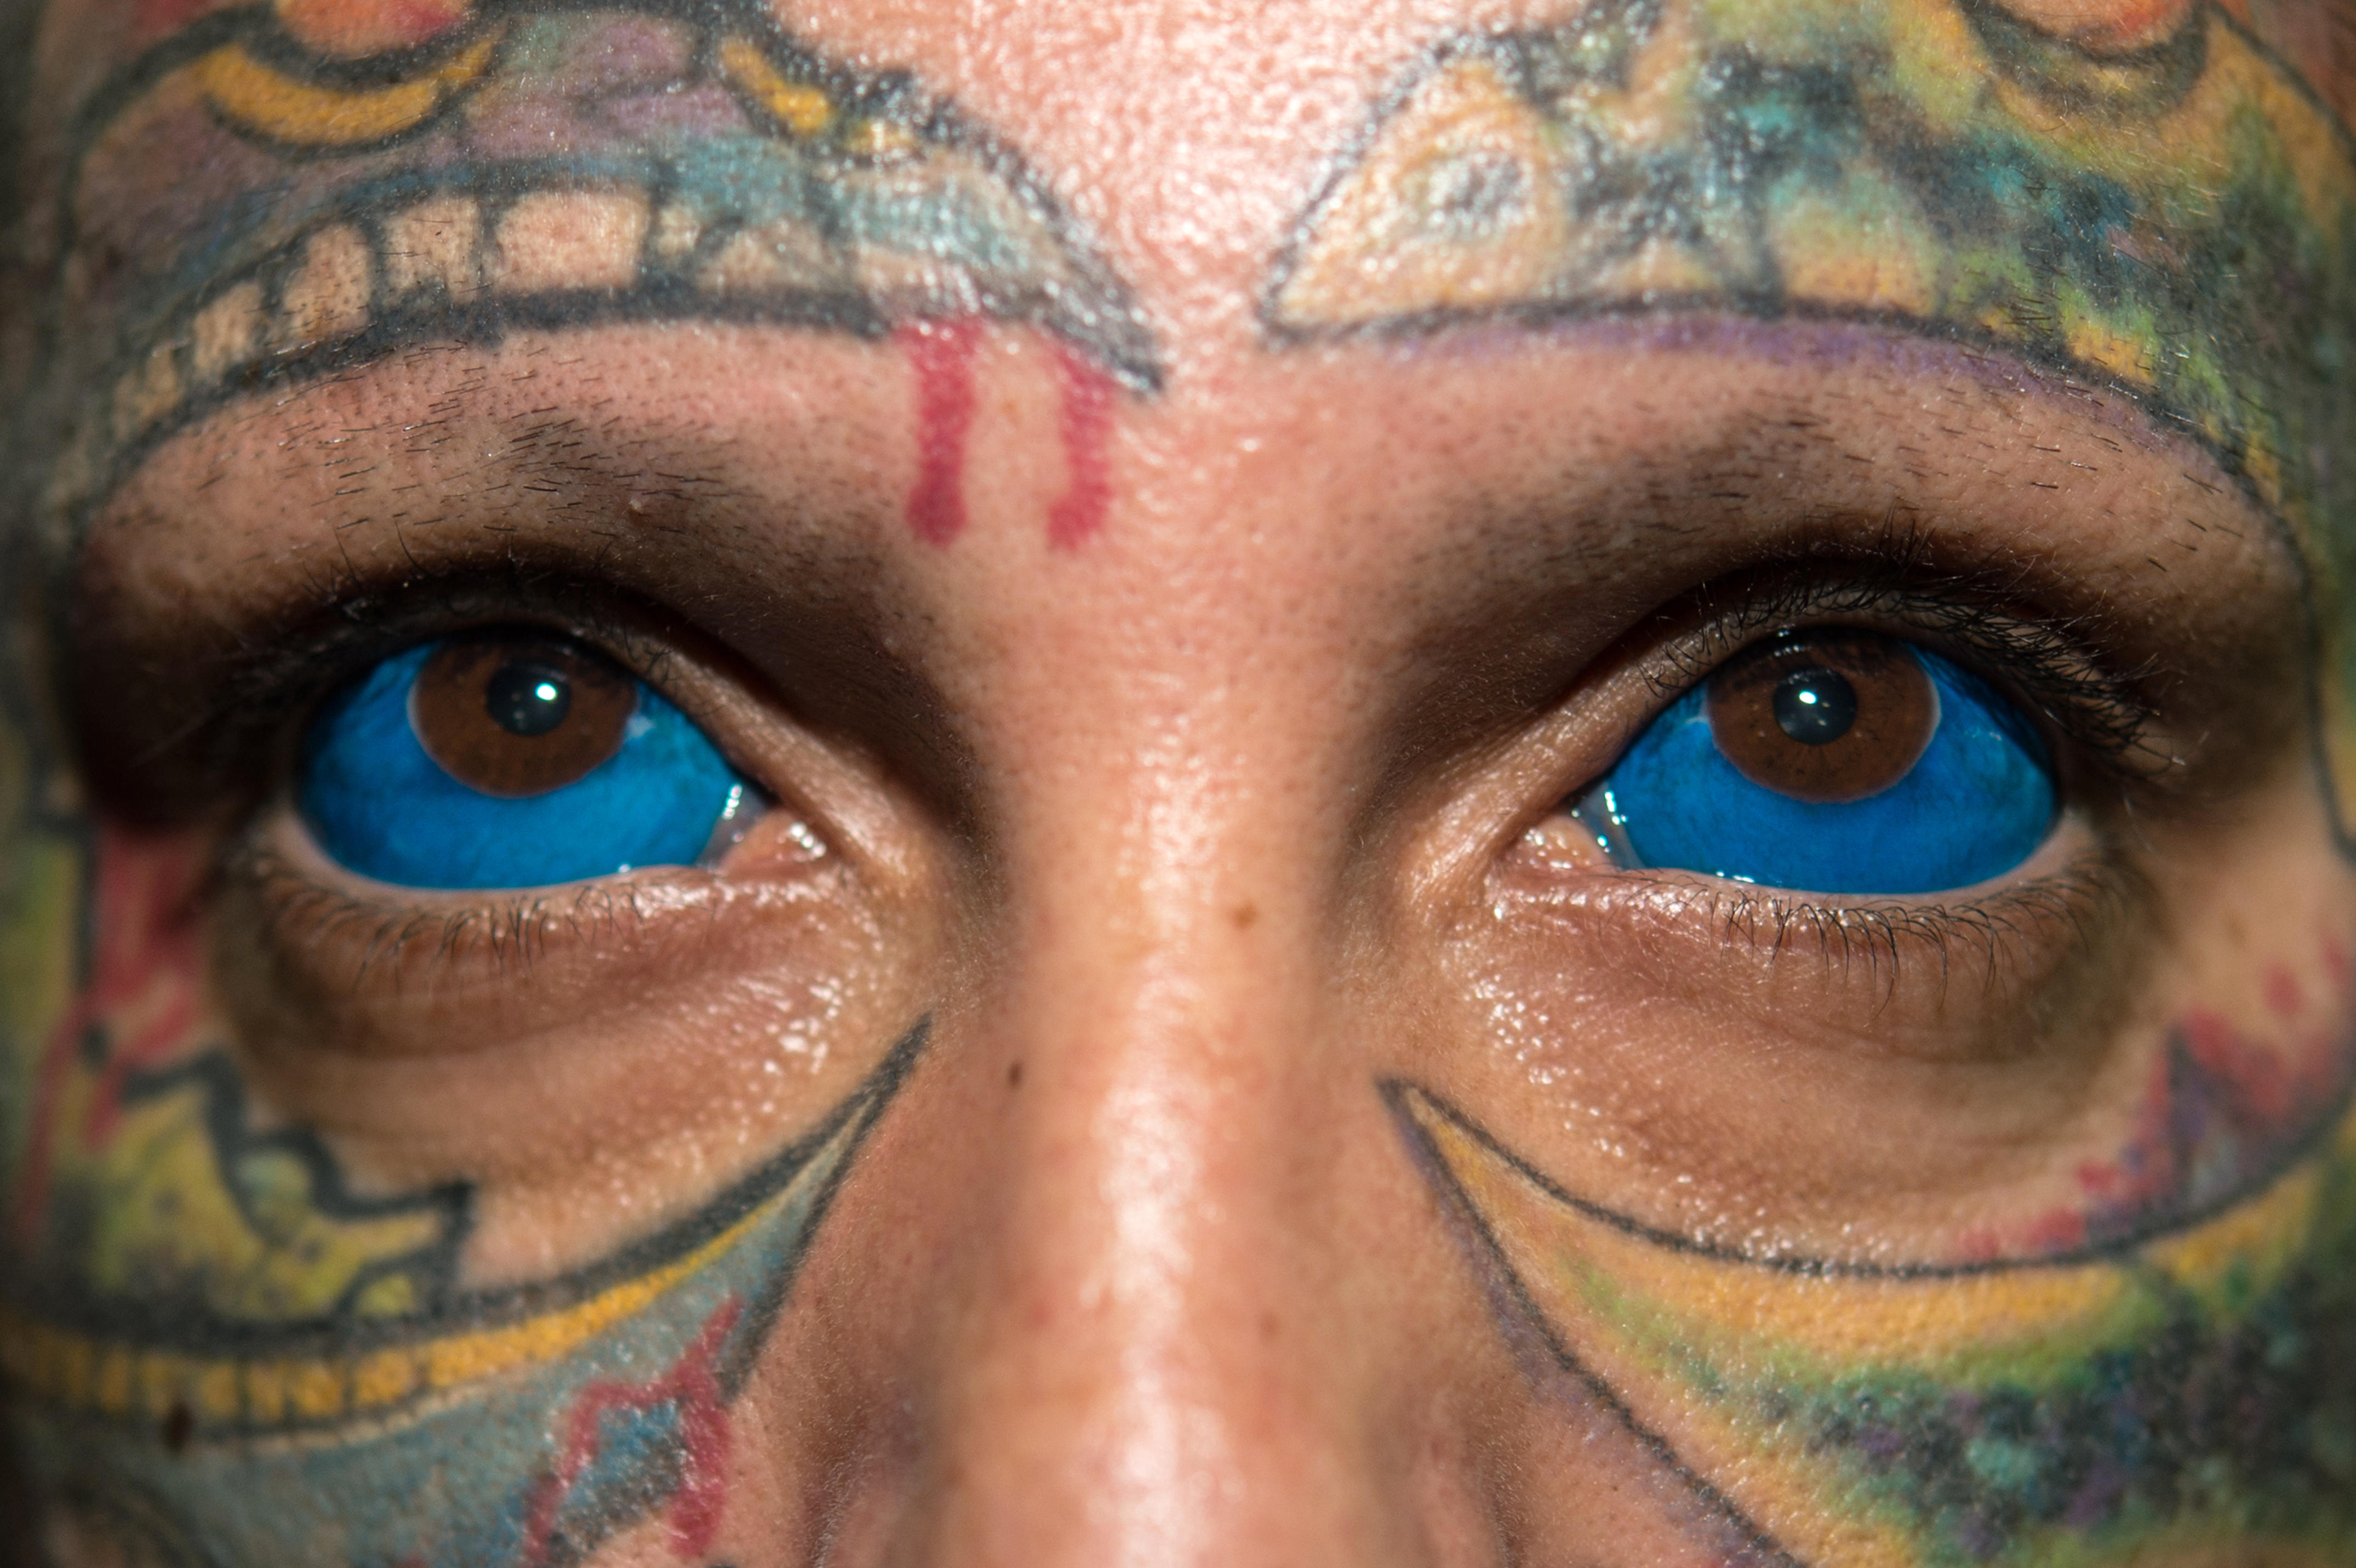 Sclera Tattoo Gone Wrong Prompts Warning From Model Catt Gallinger Cbs News